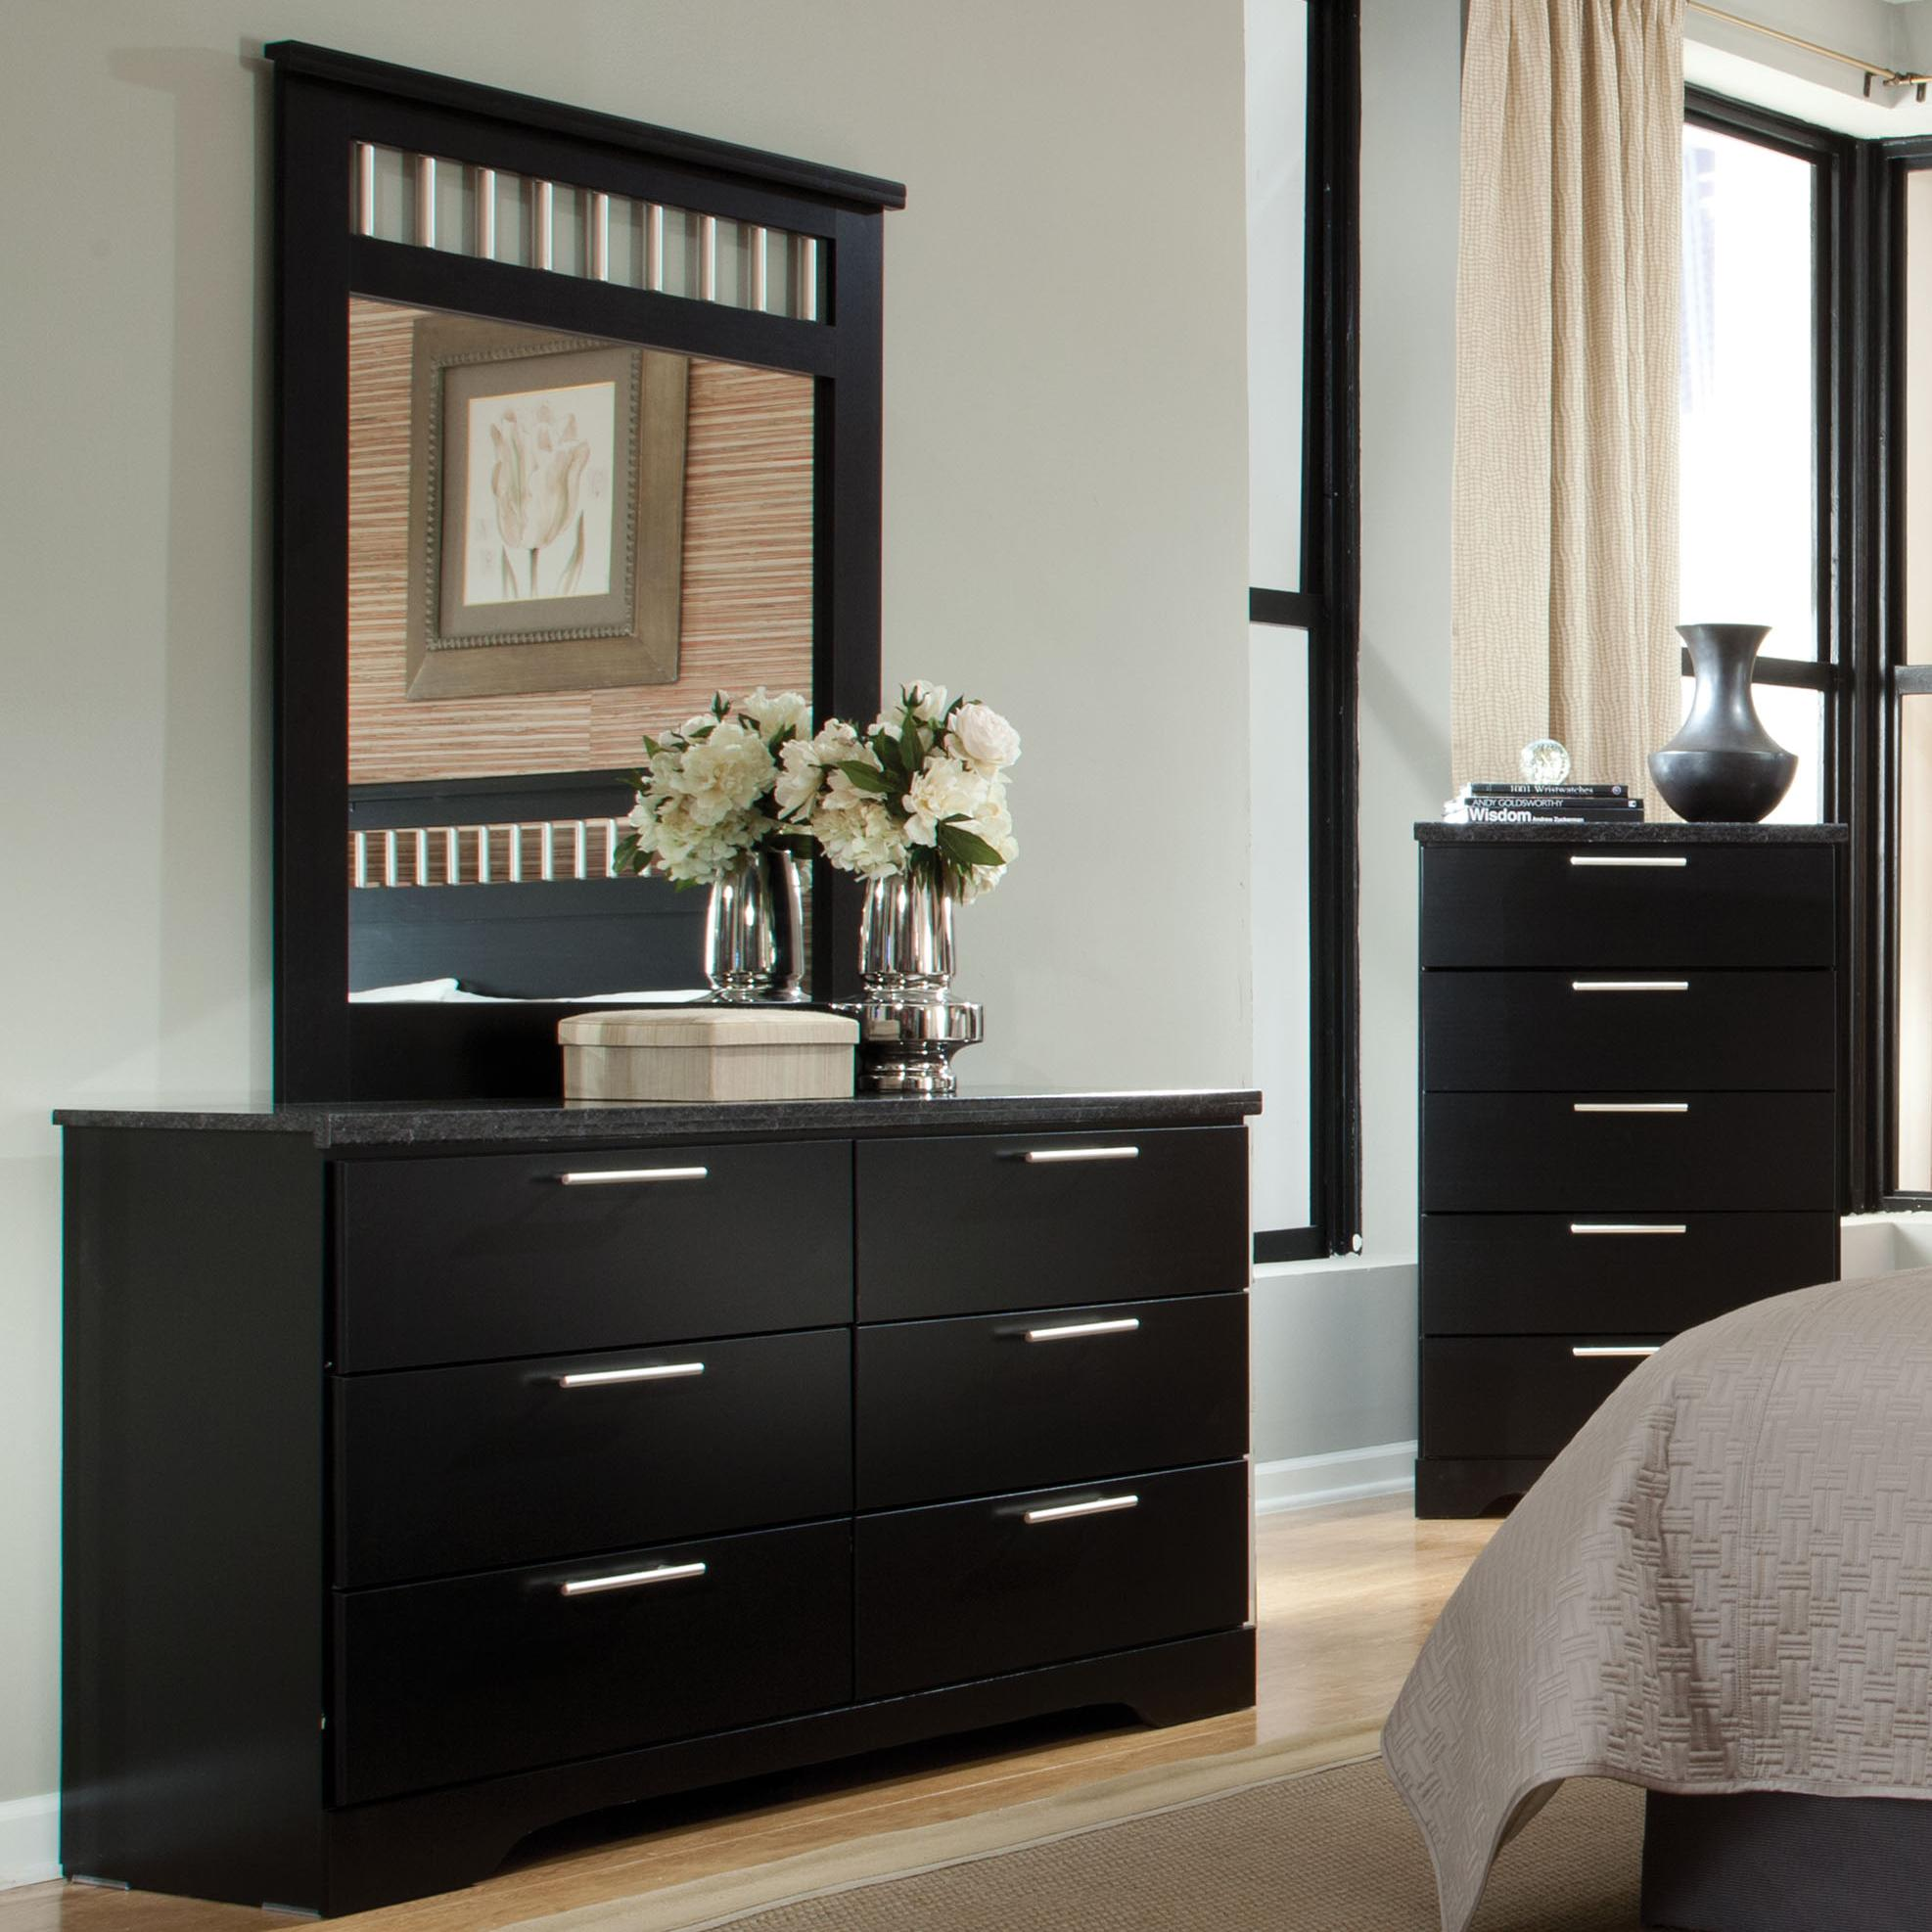 Standard Furniture Atlanta Dresser & Mirror - Item Number: 65009+18